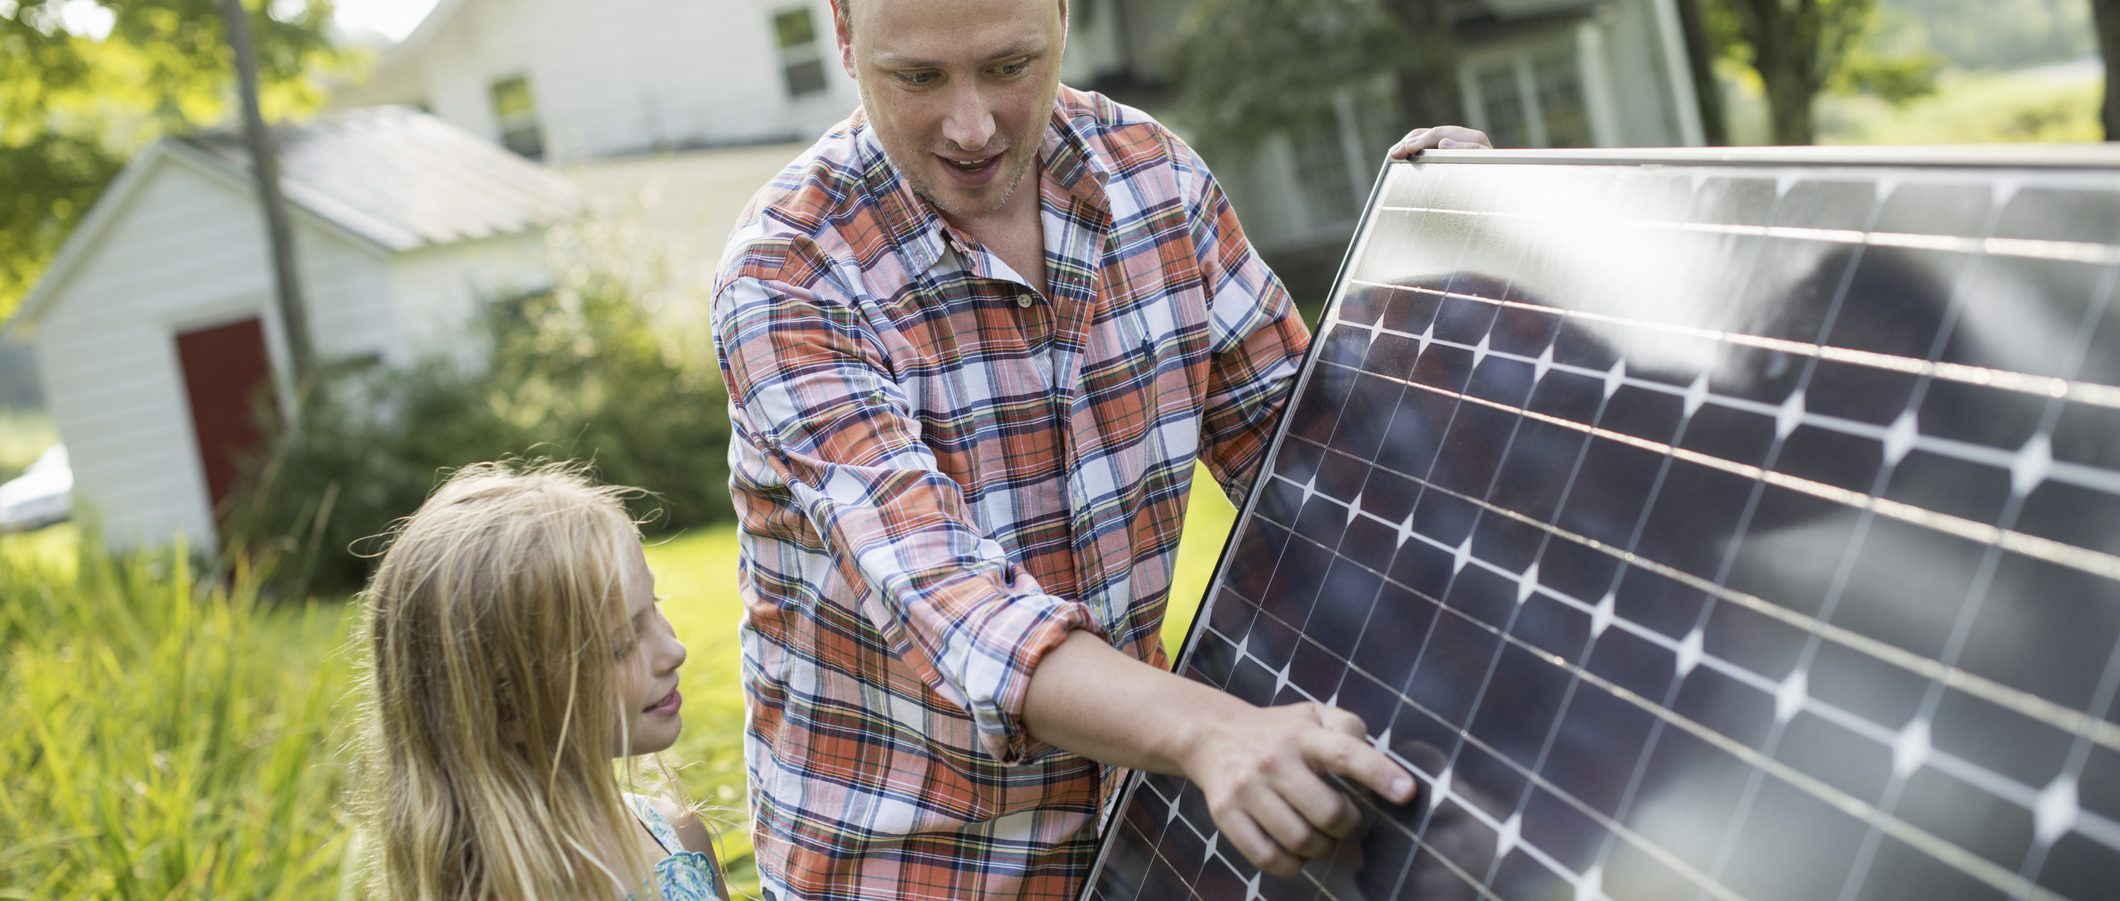 Installing solar panels can help you go off the grid